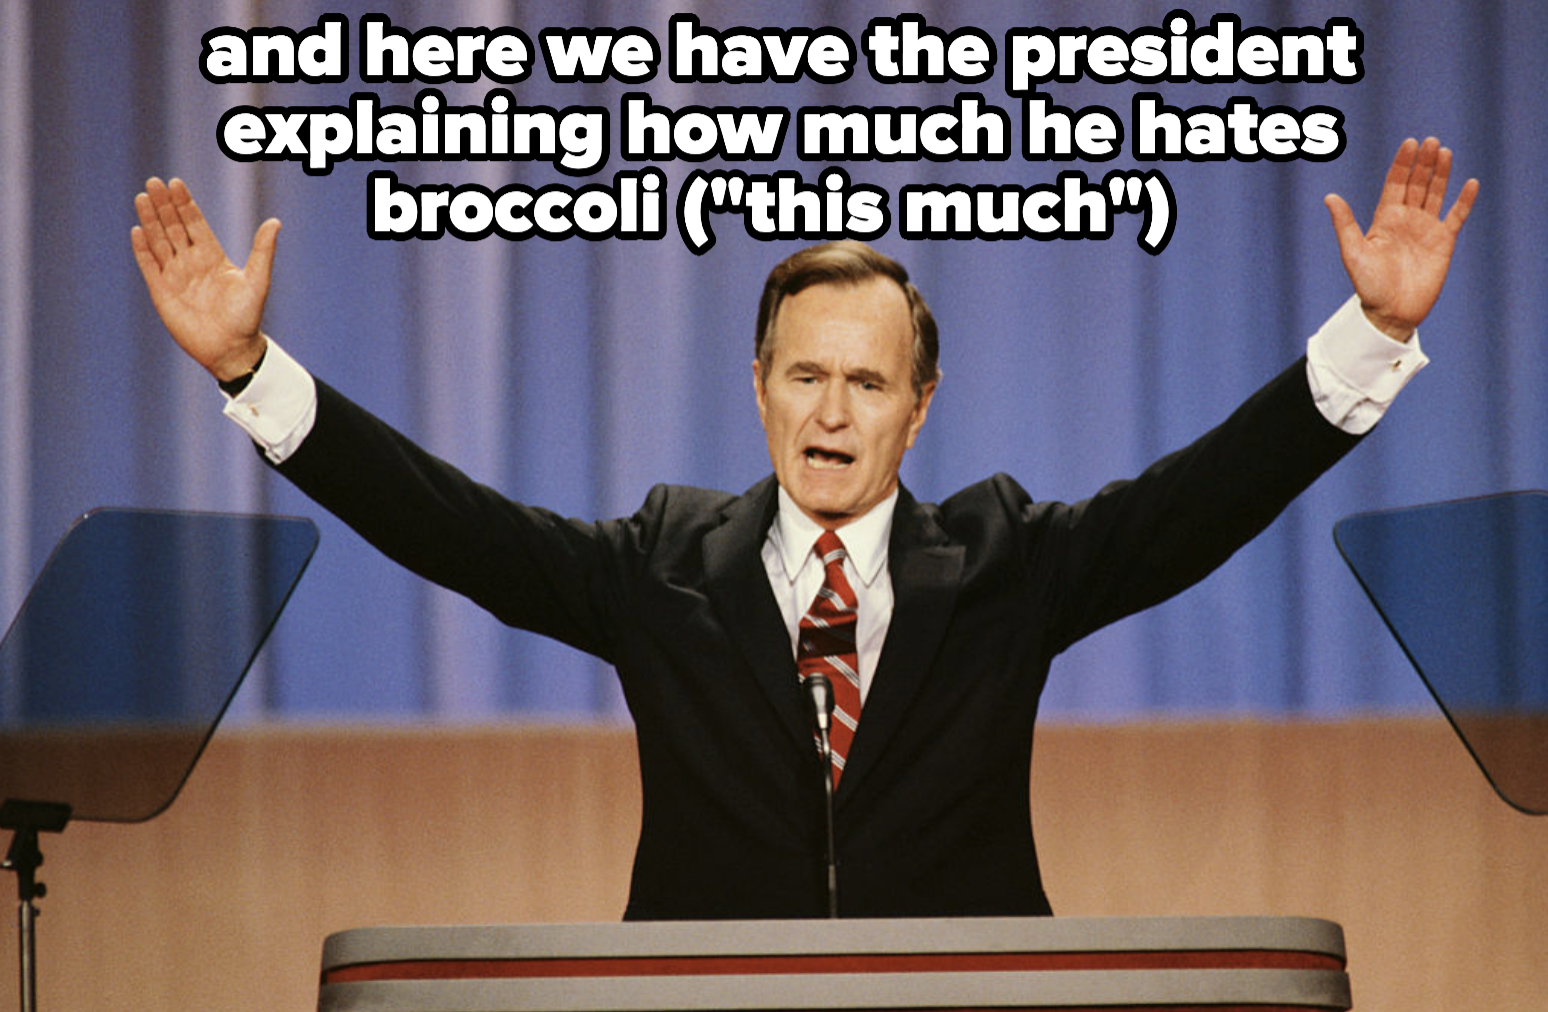 George Bush with wide open arms, which is how much he hates broccoli